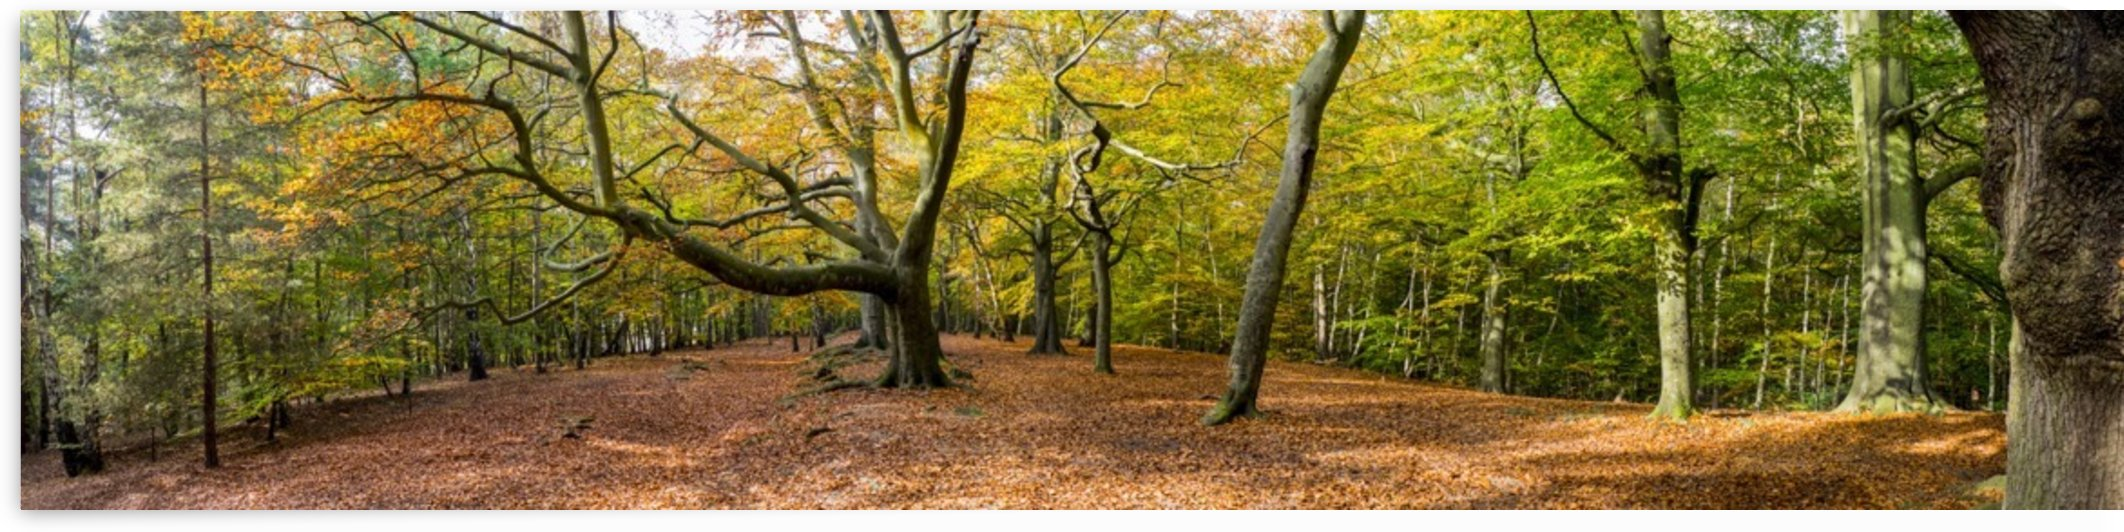 Panorama of a forest in autumn colours; Surrey, England by PacificStock